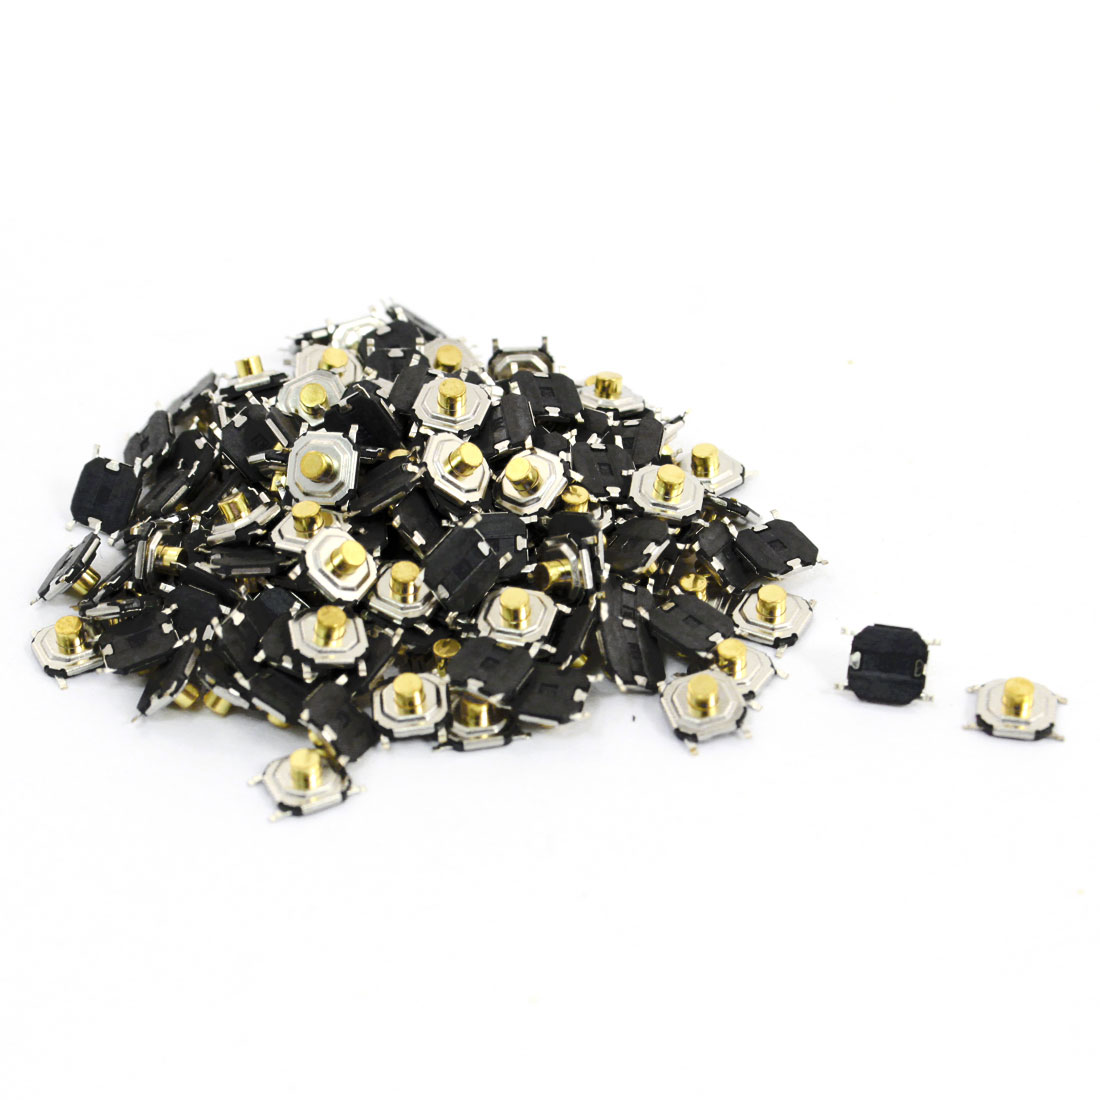 150pcs SMT Momentary Action 4 Pin Terminals Tactile Switches 4x4x2.5mm